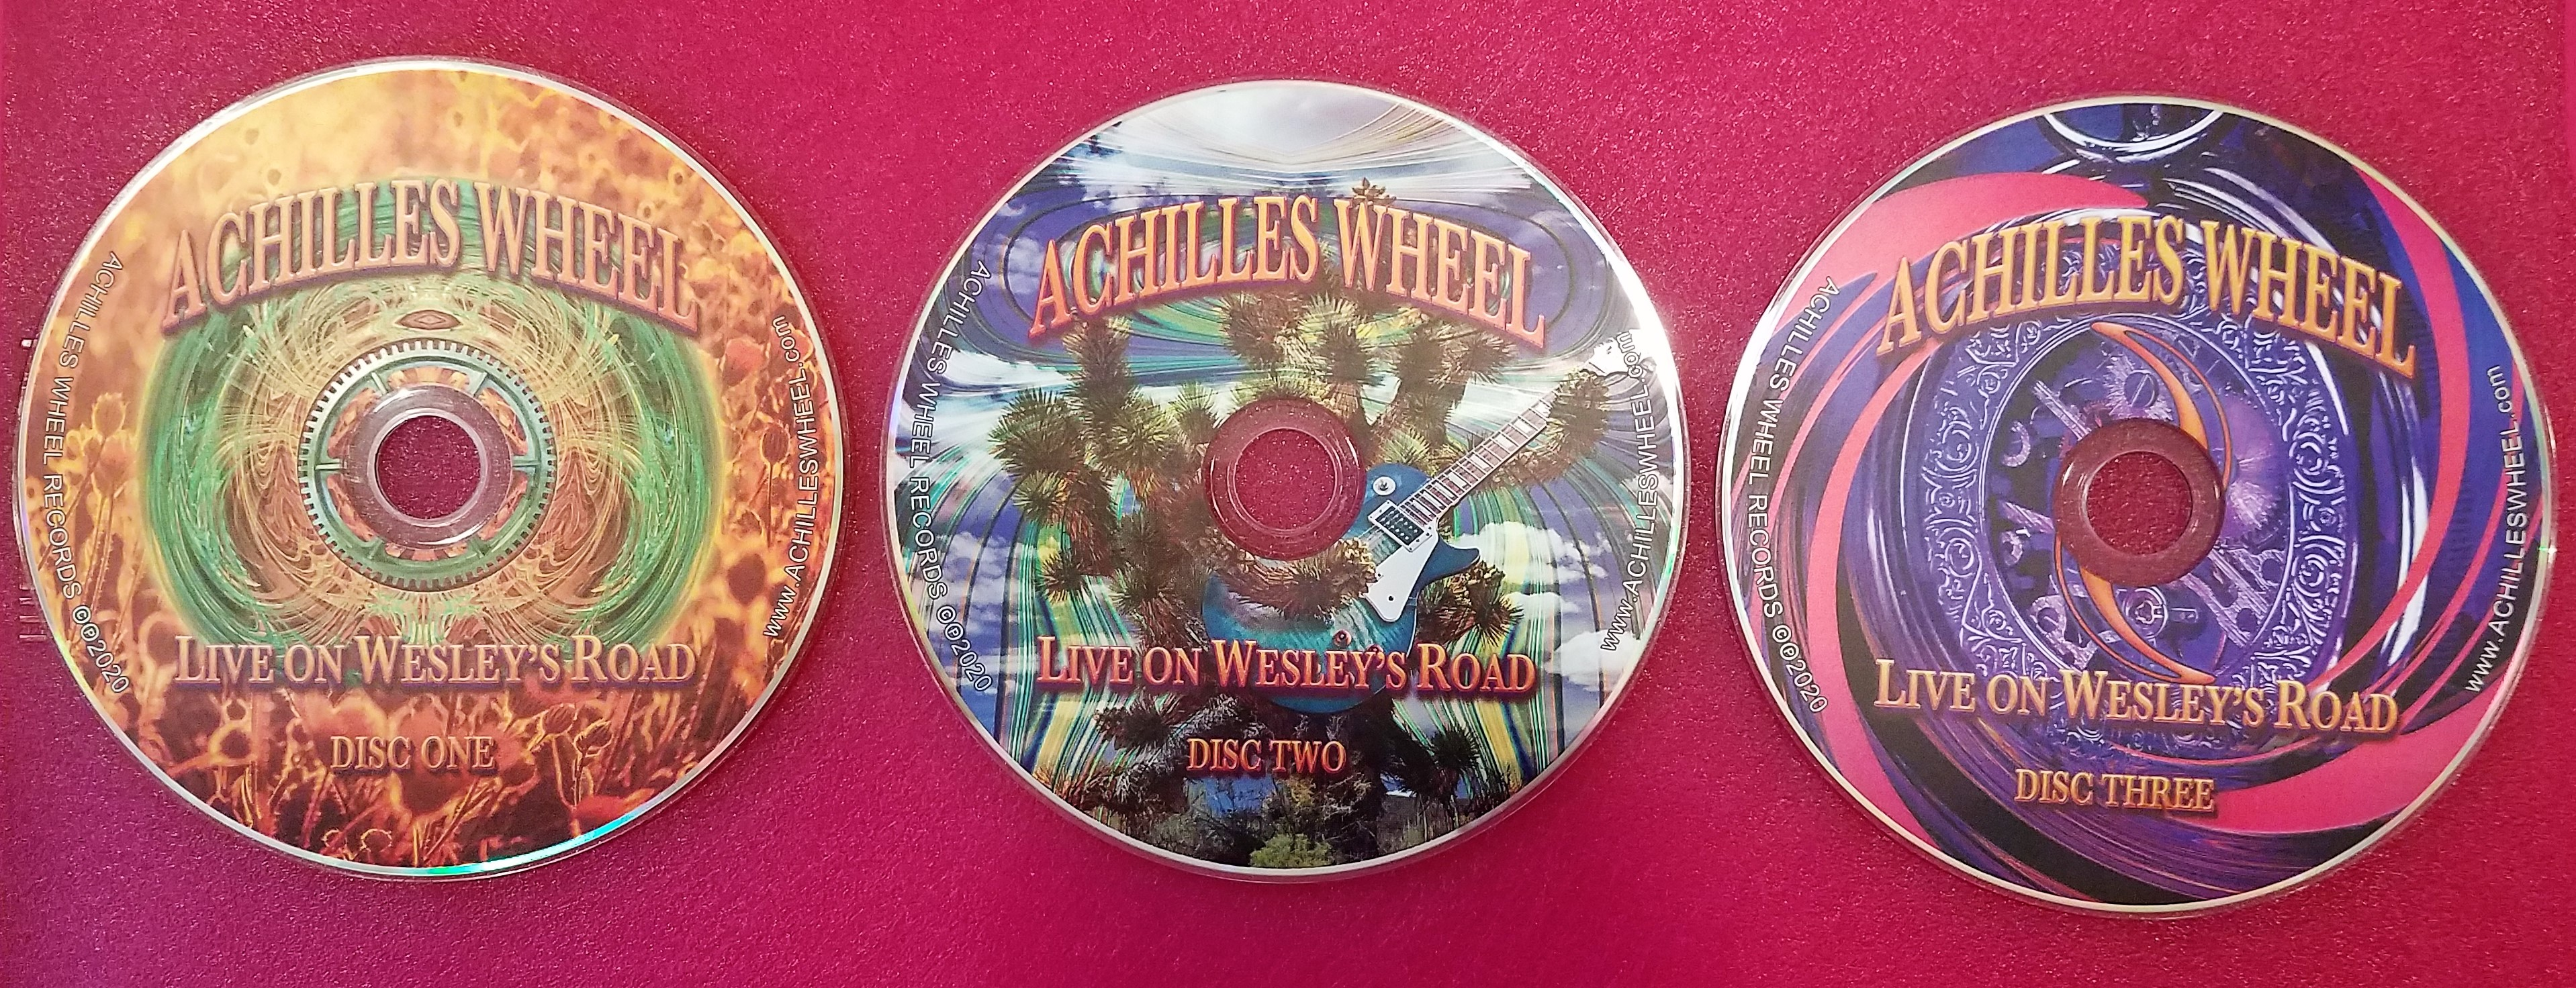 Achilles Wheel: Live on Wesley's Road | Review